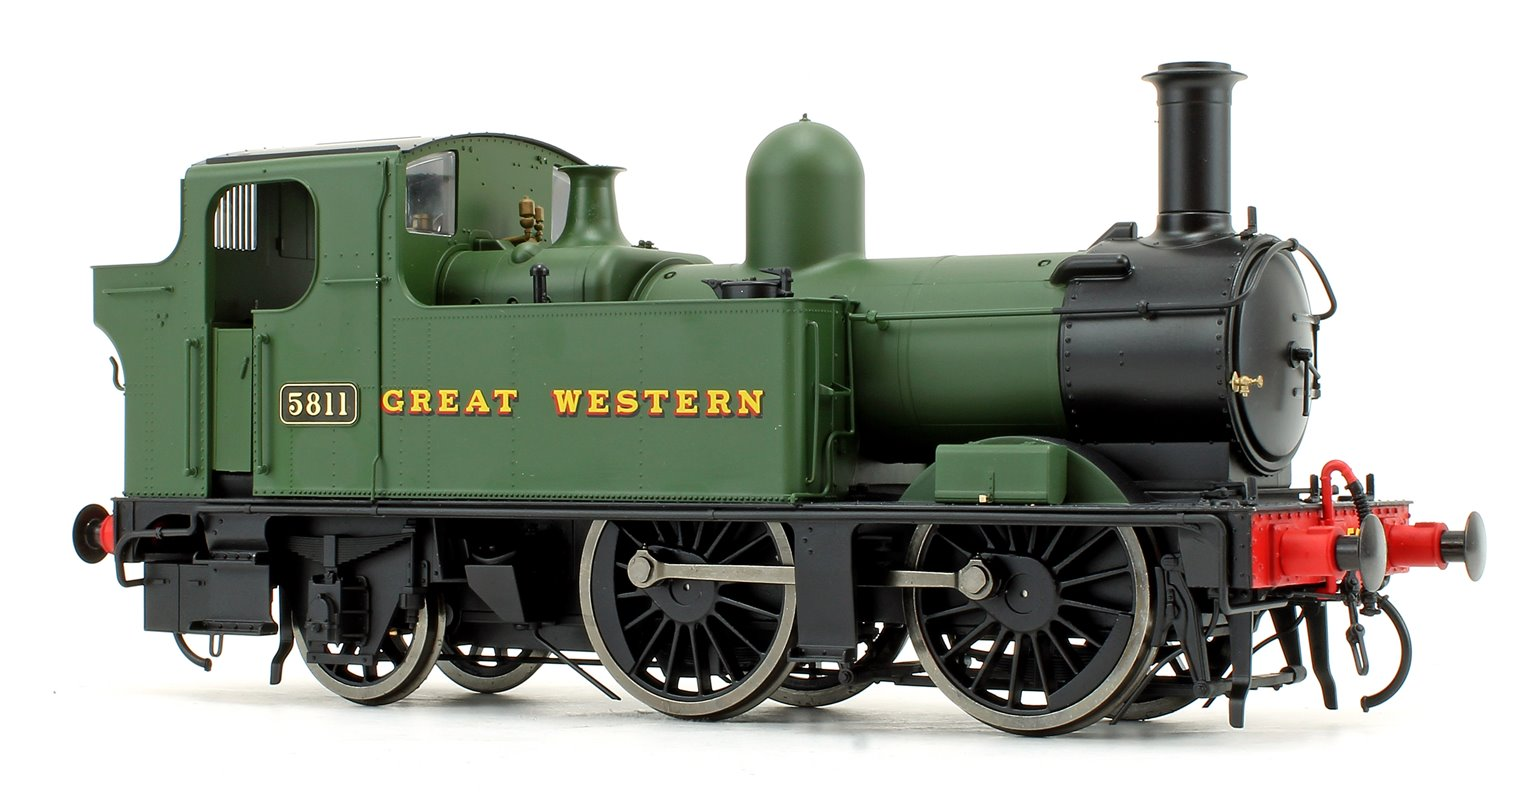 58xx Class Great Western Green 5811